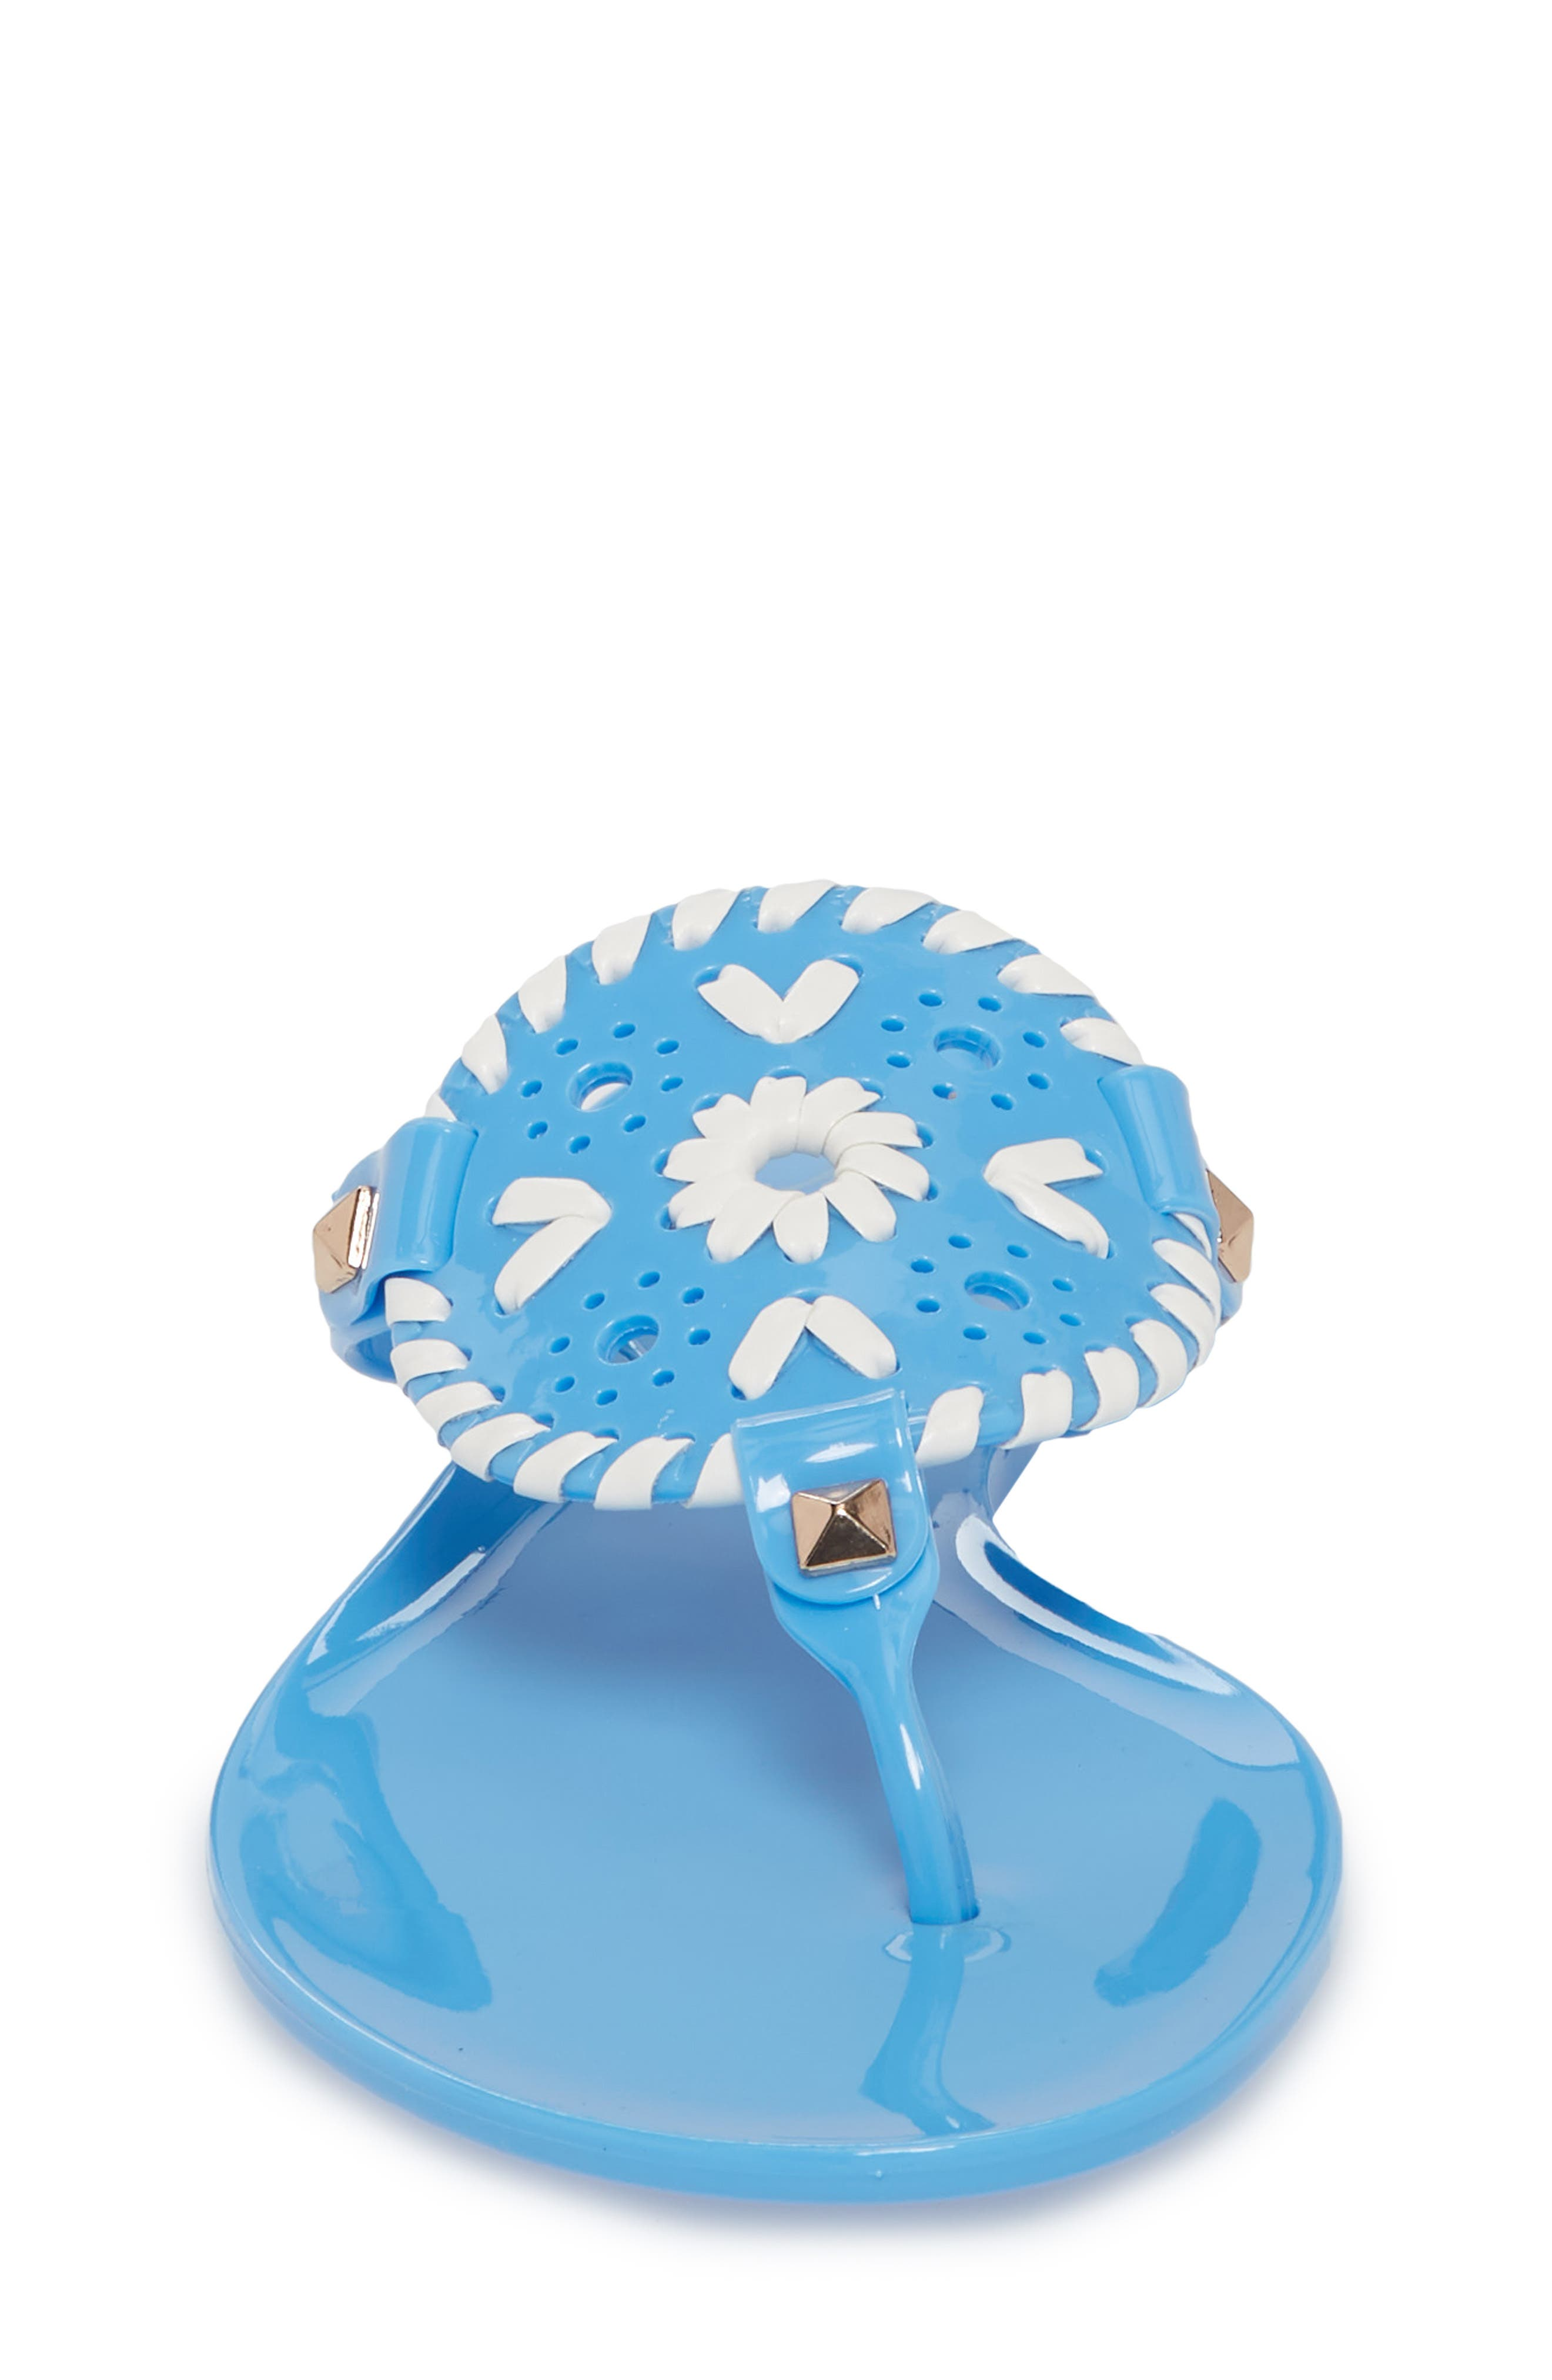 'Miss Georgica' Jelly Flip Flop,                             Alternate thumbnail 4, color,                             FRENCH BLUE/ WHITE JELLY